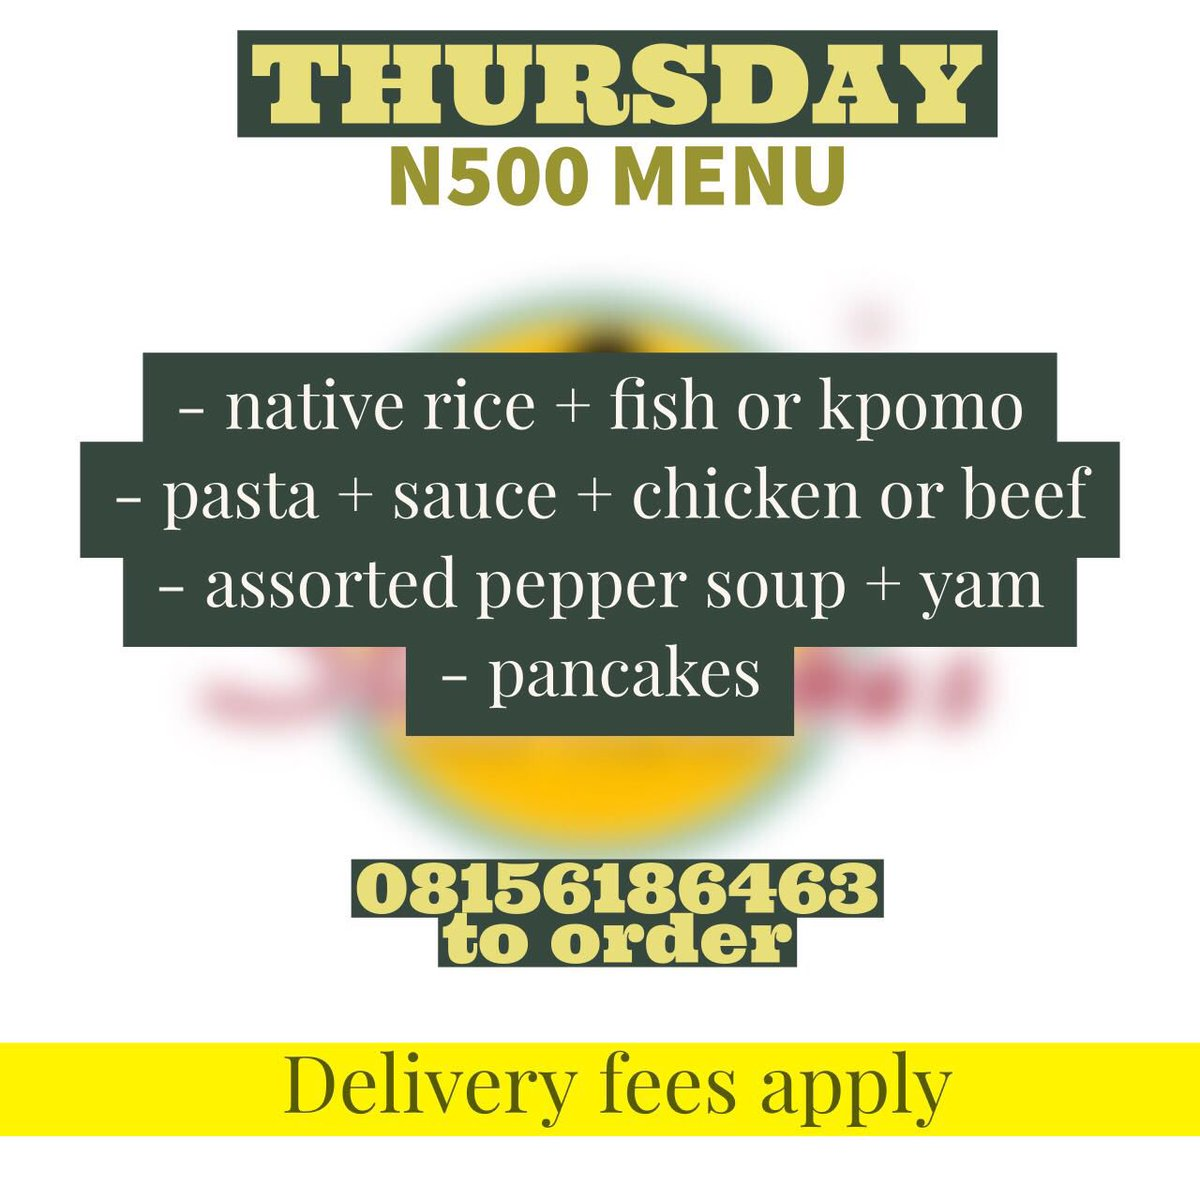 Thursday&#39;s menu  Order line closes 9am Thursday morning. Keep the orders rolling in . Only 500. Call 08156186463  #abujaonly <br>http://pic.twitter.com/5P64oPv864